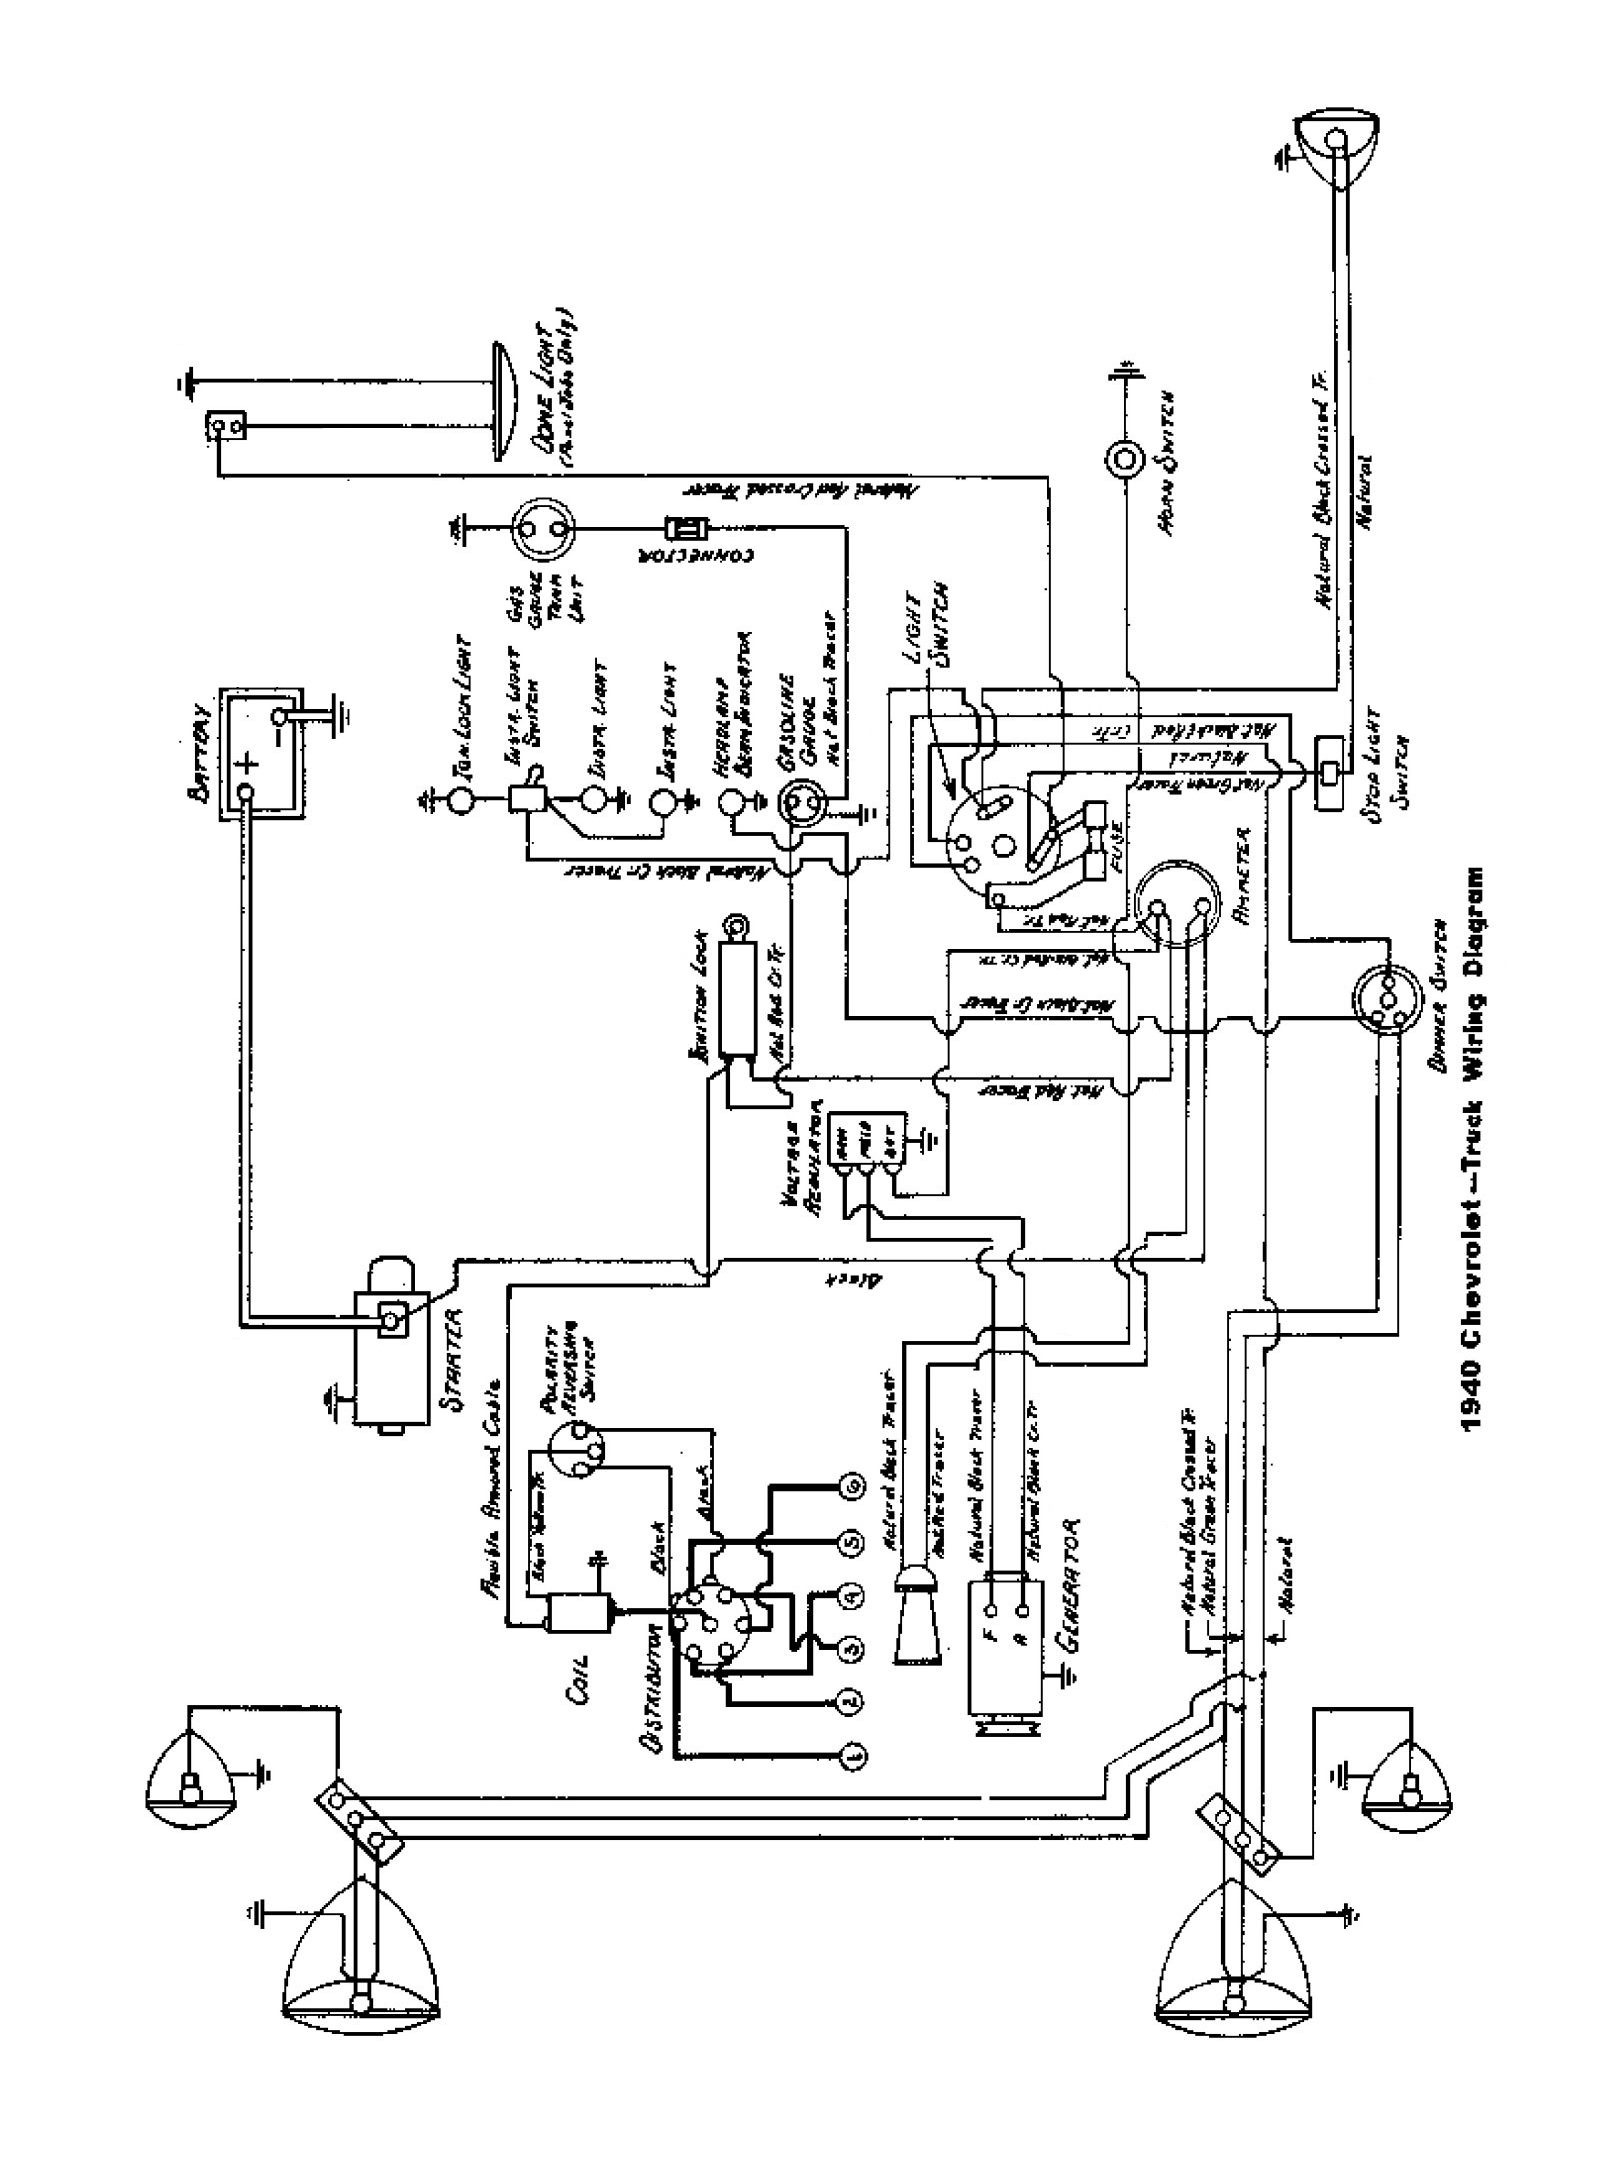 57 Chevy Fuse Block Diagram - Wiring Diagram •